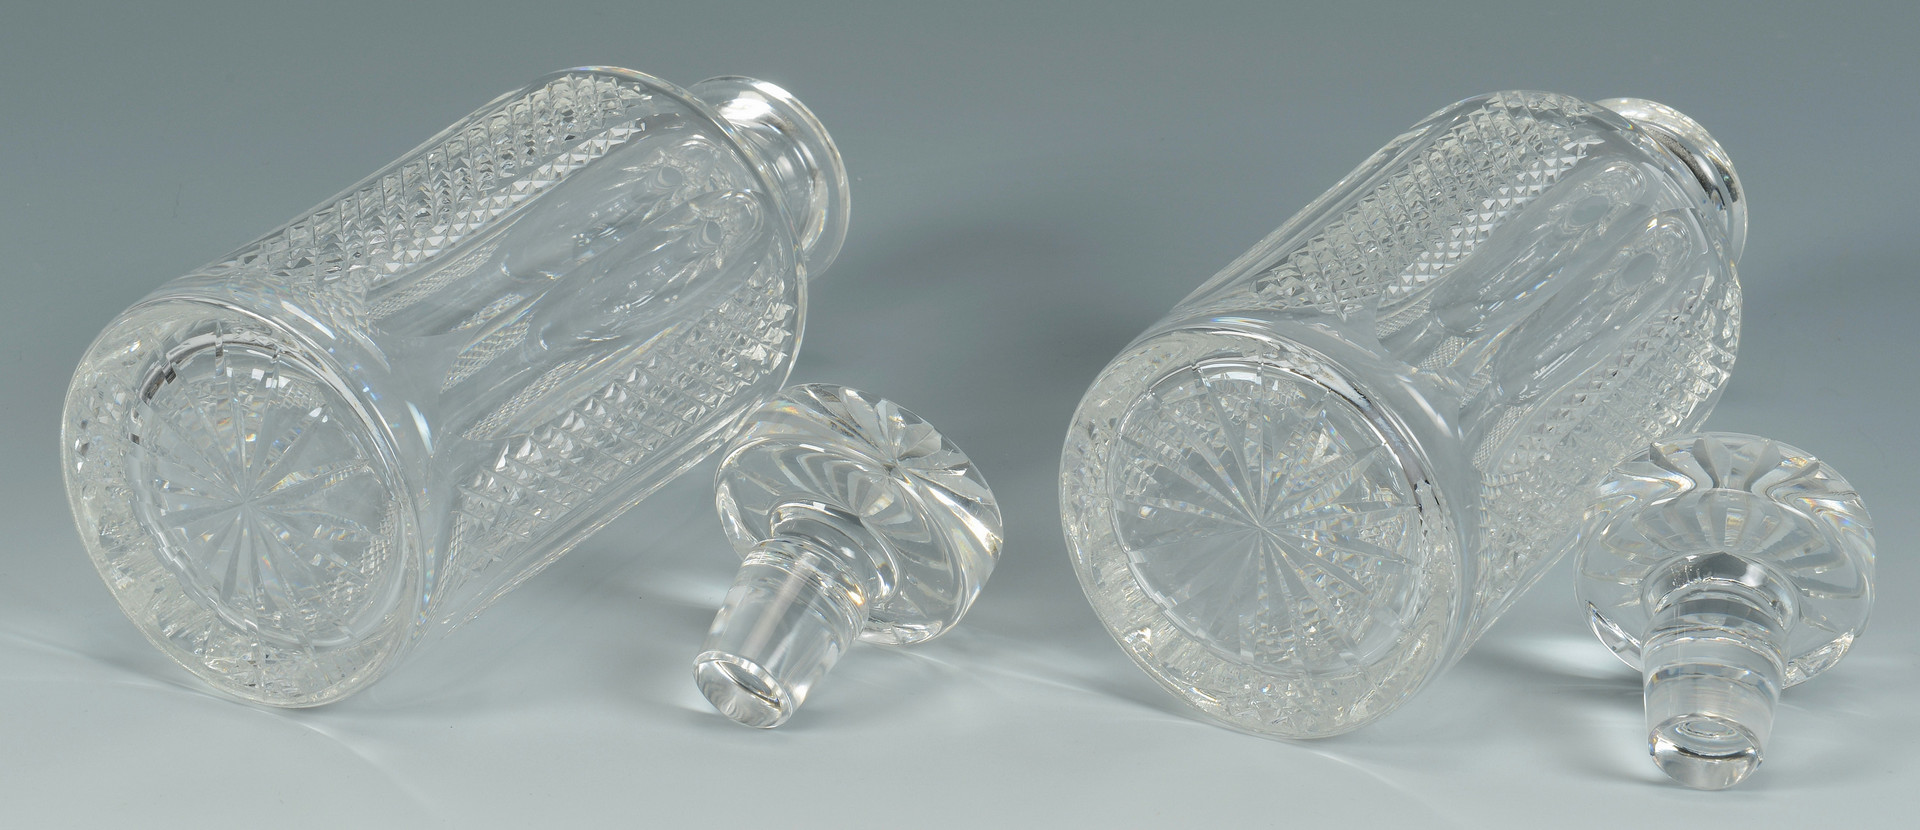 Lot 880: 7 Cut Crystal Decanters, Waterford & Galway